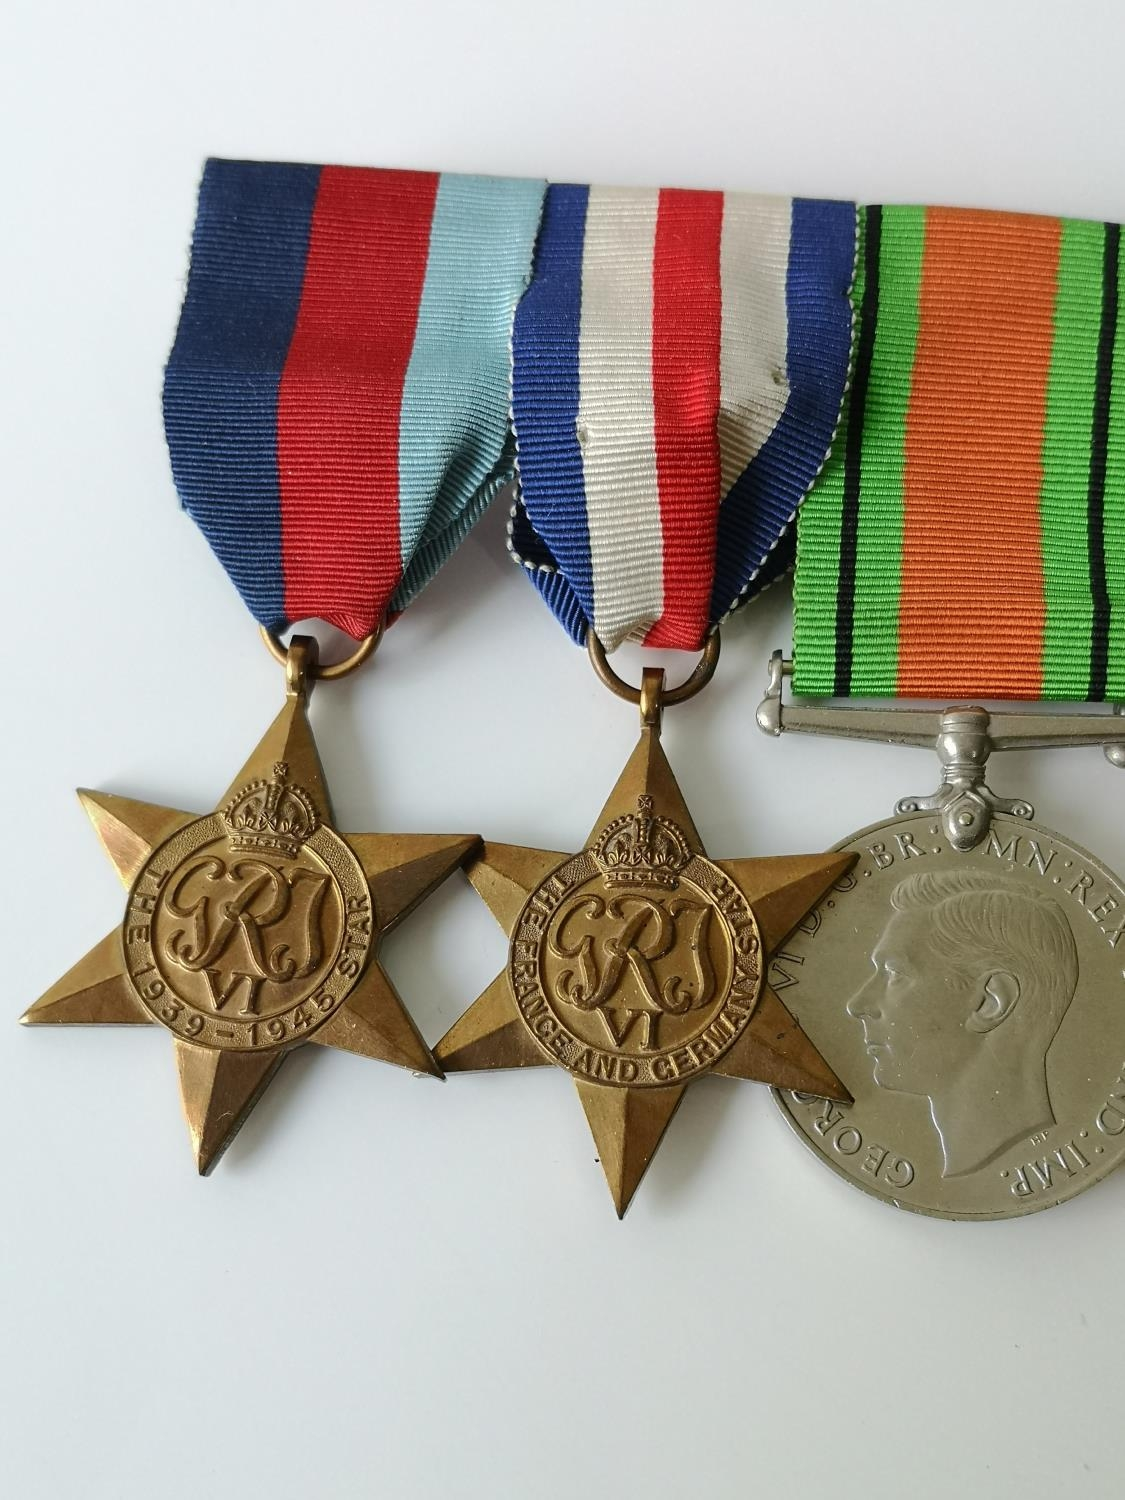 A Set of four WW2 Medals & 1952 ERII Territorial medal. - Image 2 of 4